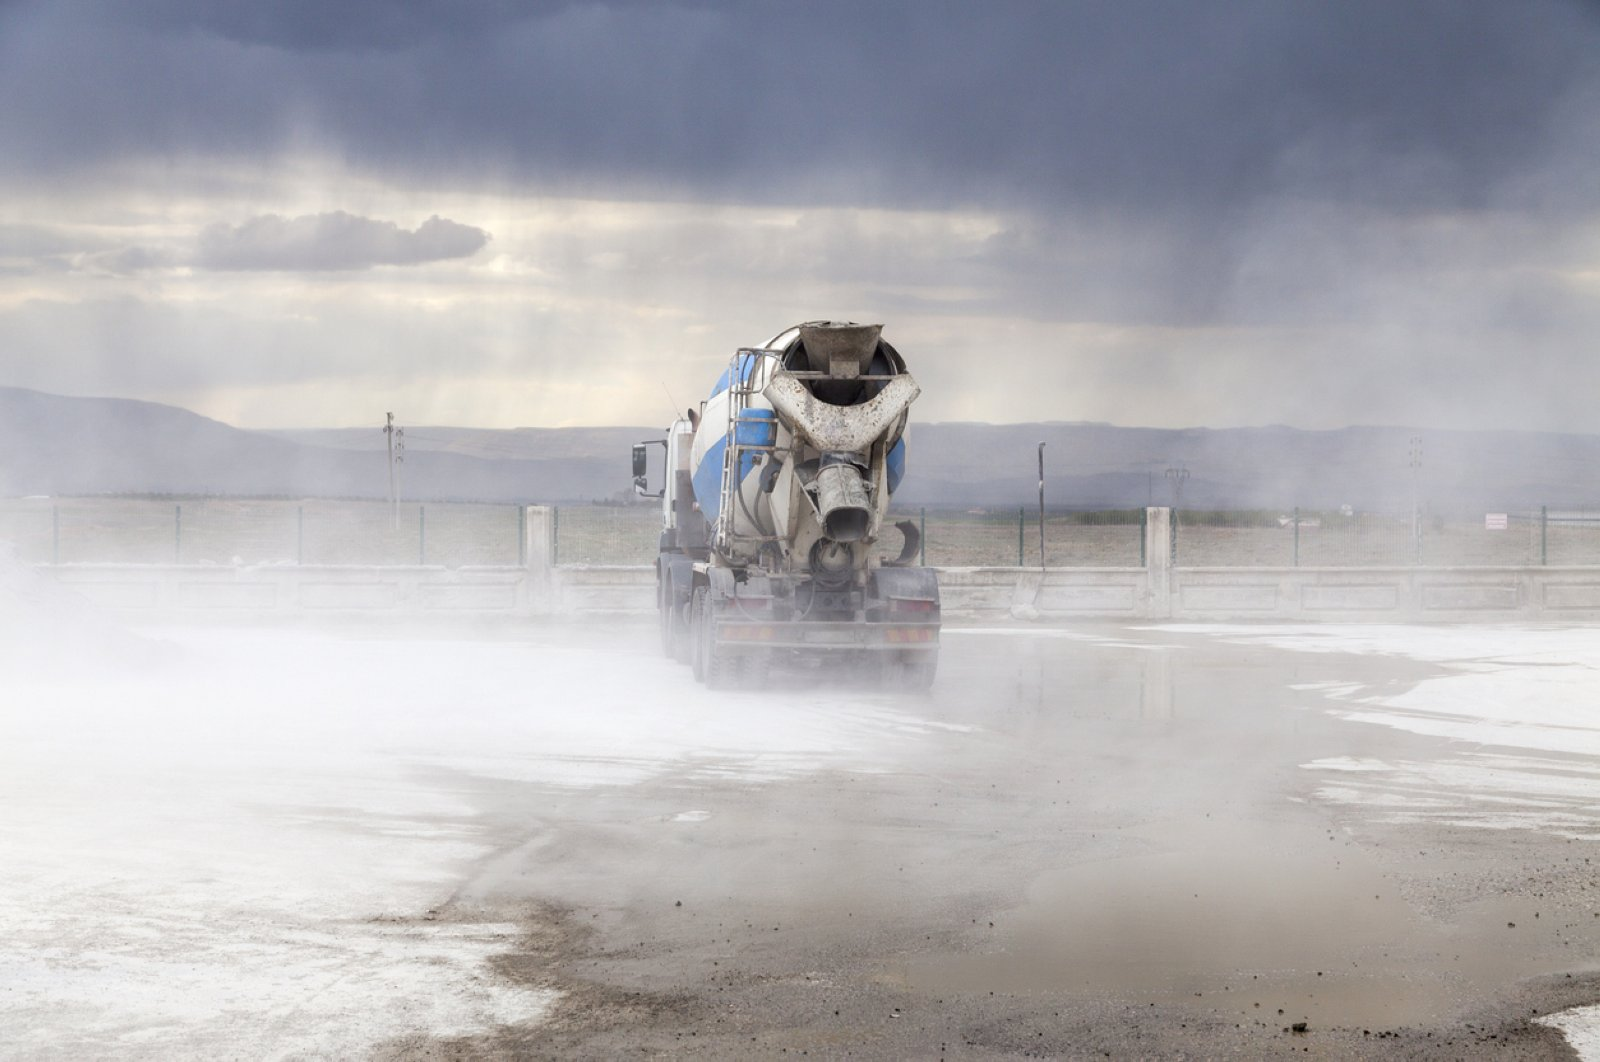 Cement mixer truck waiting and parking on line. (Hüseyin Tuncer / iStock Photo)